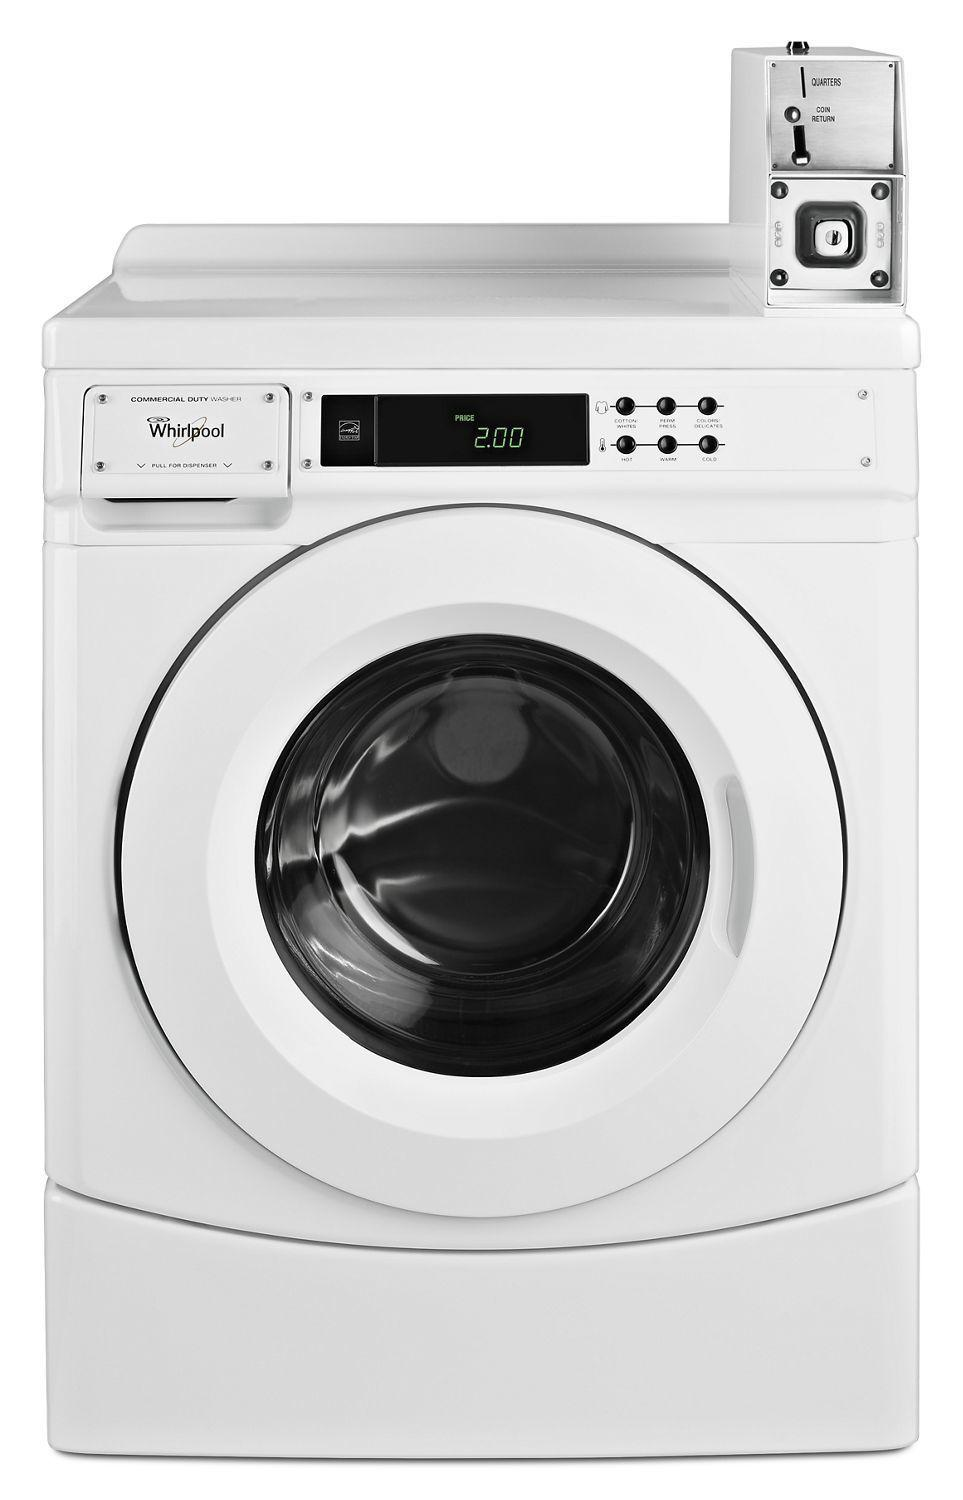 "Whirlpool27"" Commercial High-Efficiency Energy Star-Qualified Front-Load Washer Featuring Factory-Installed Coin Drop With Coin Box White"